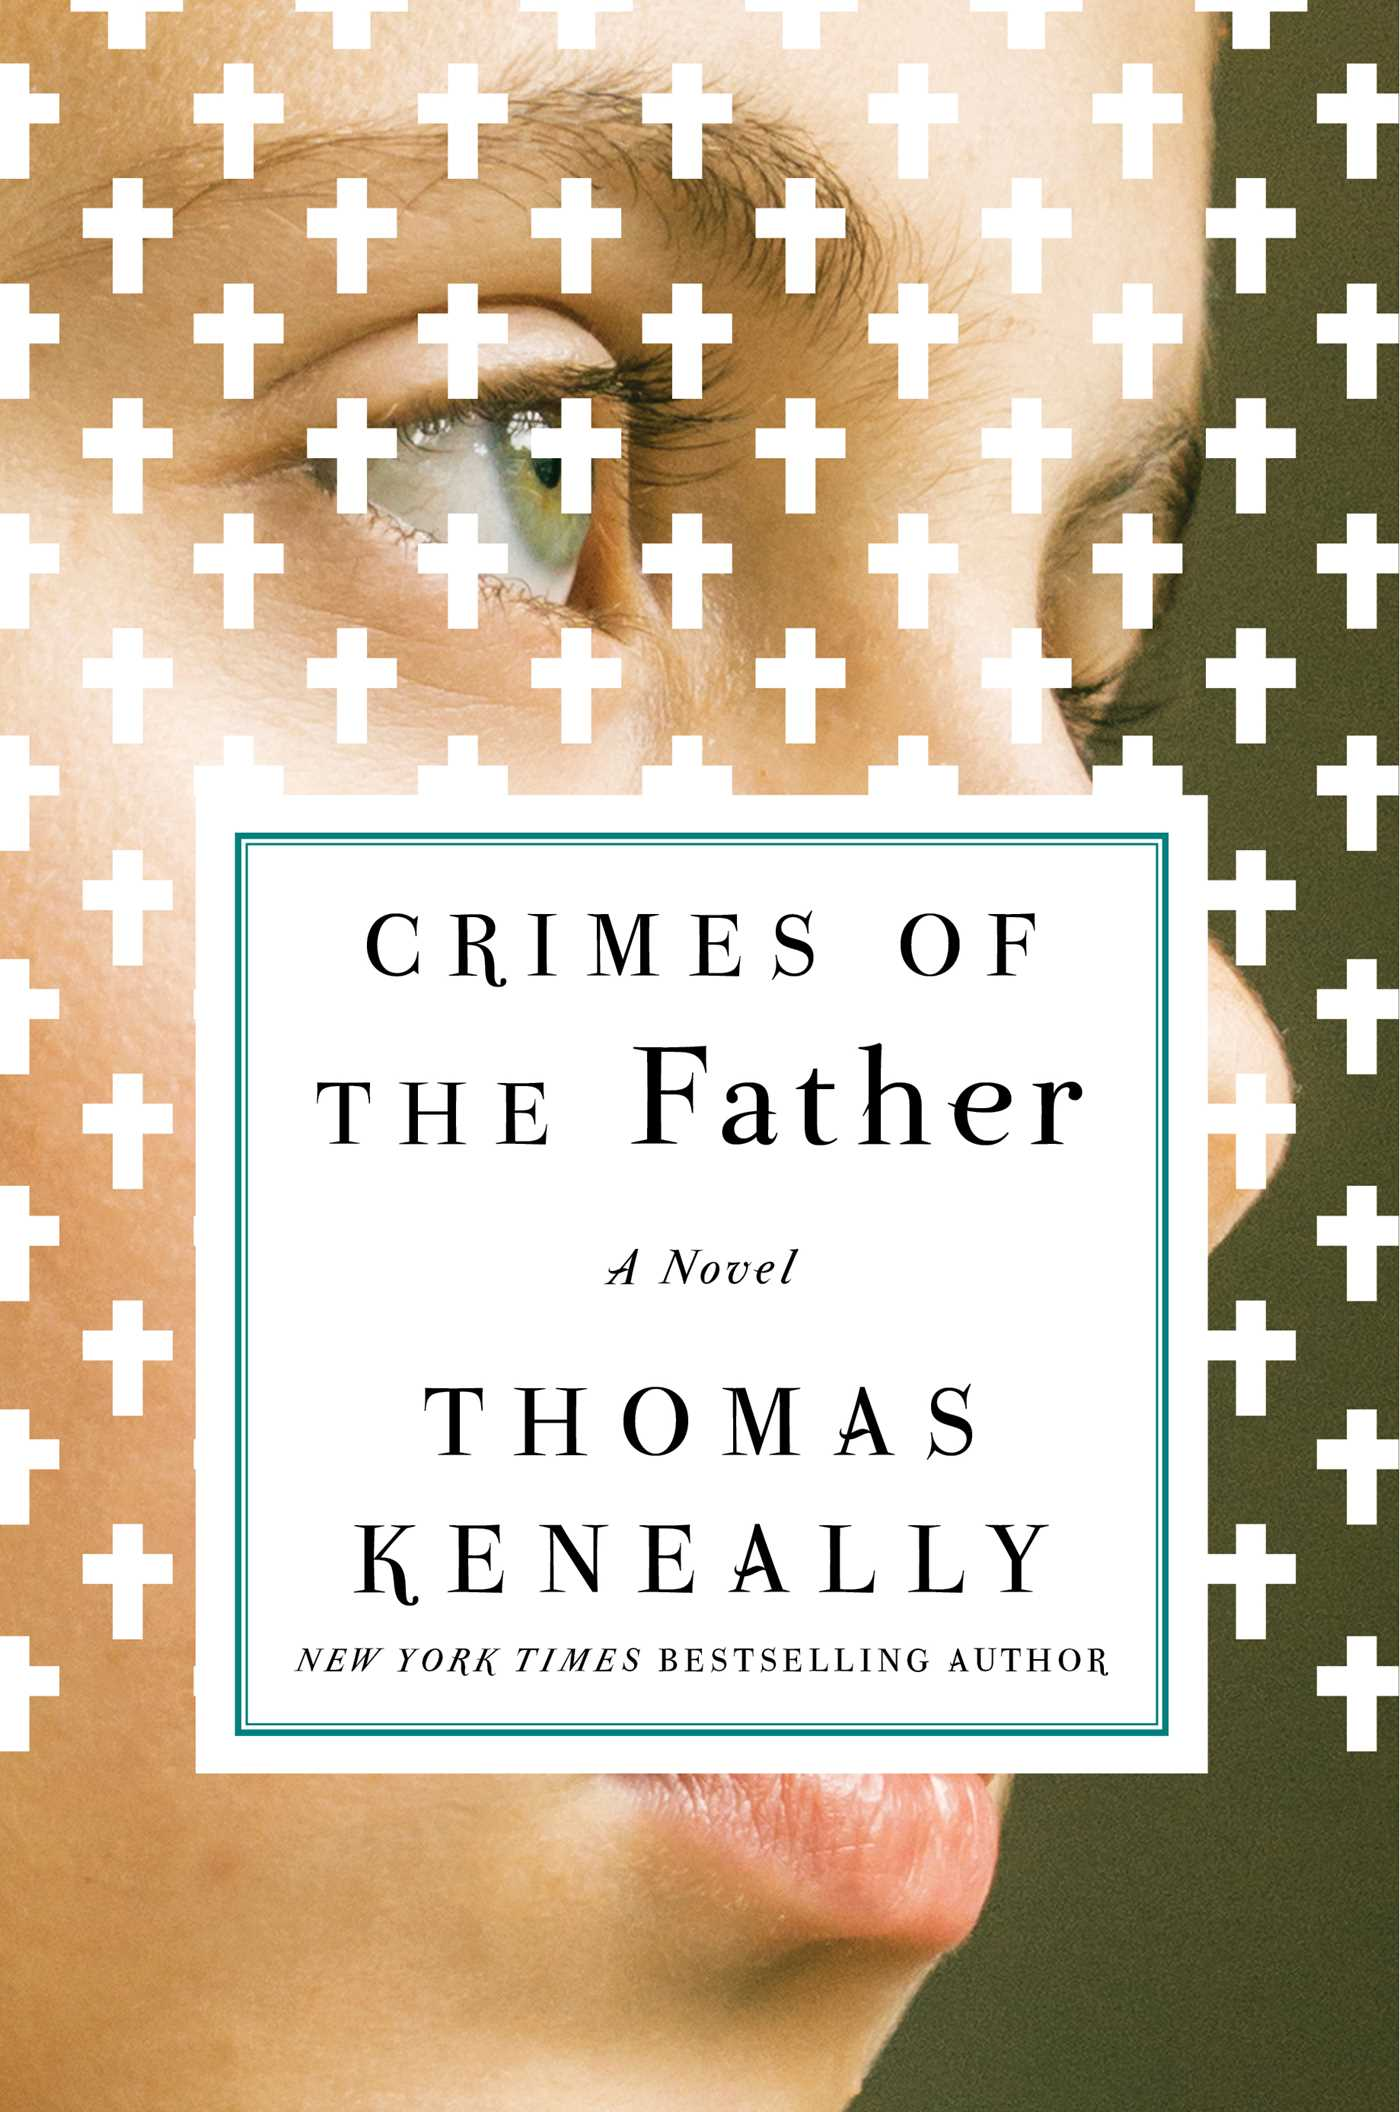 Crimes of the father 9781501128486 hr